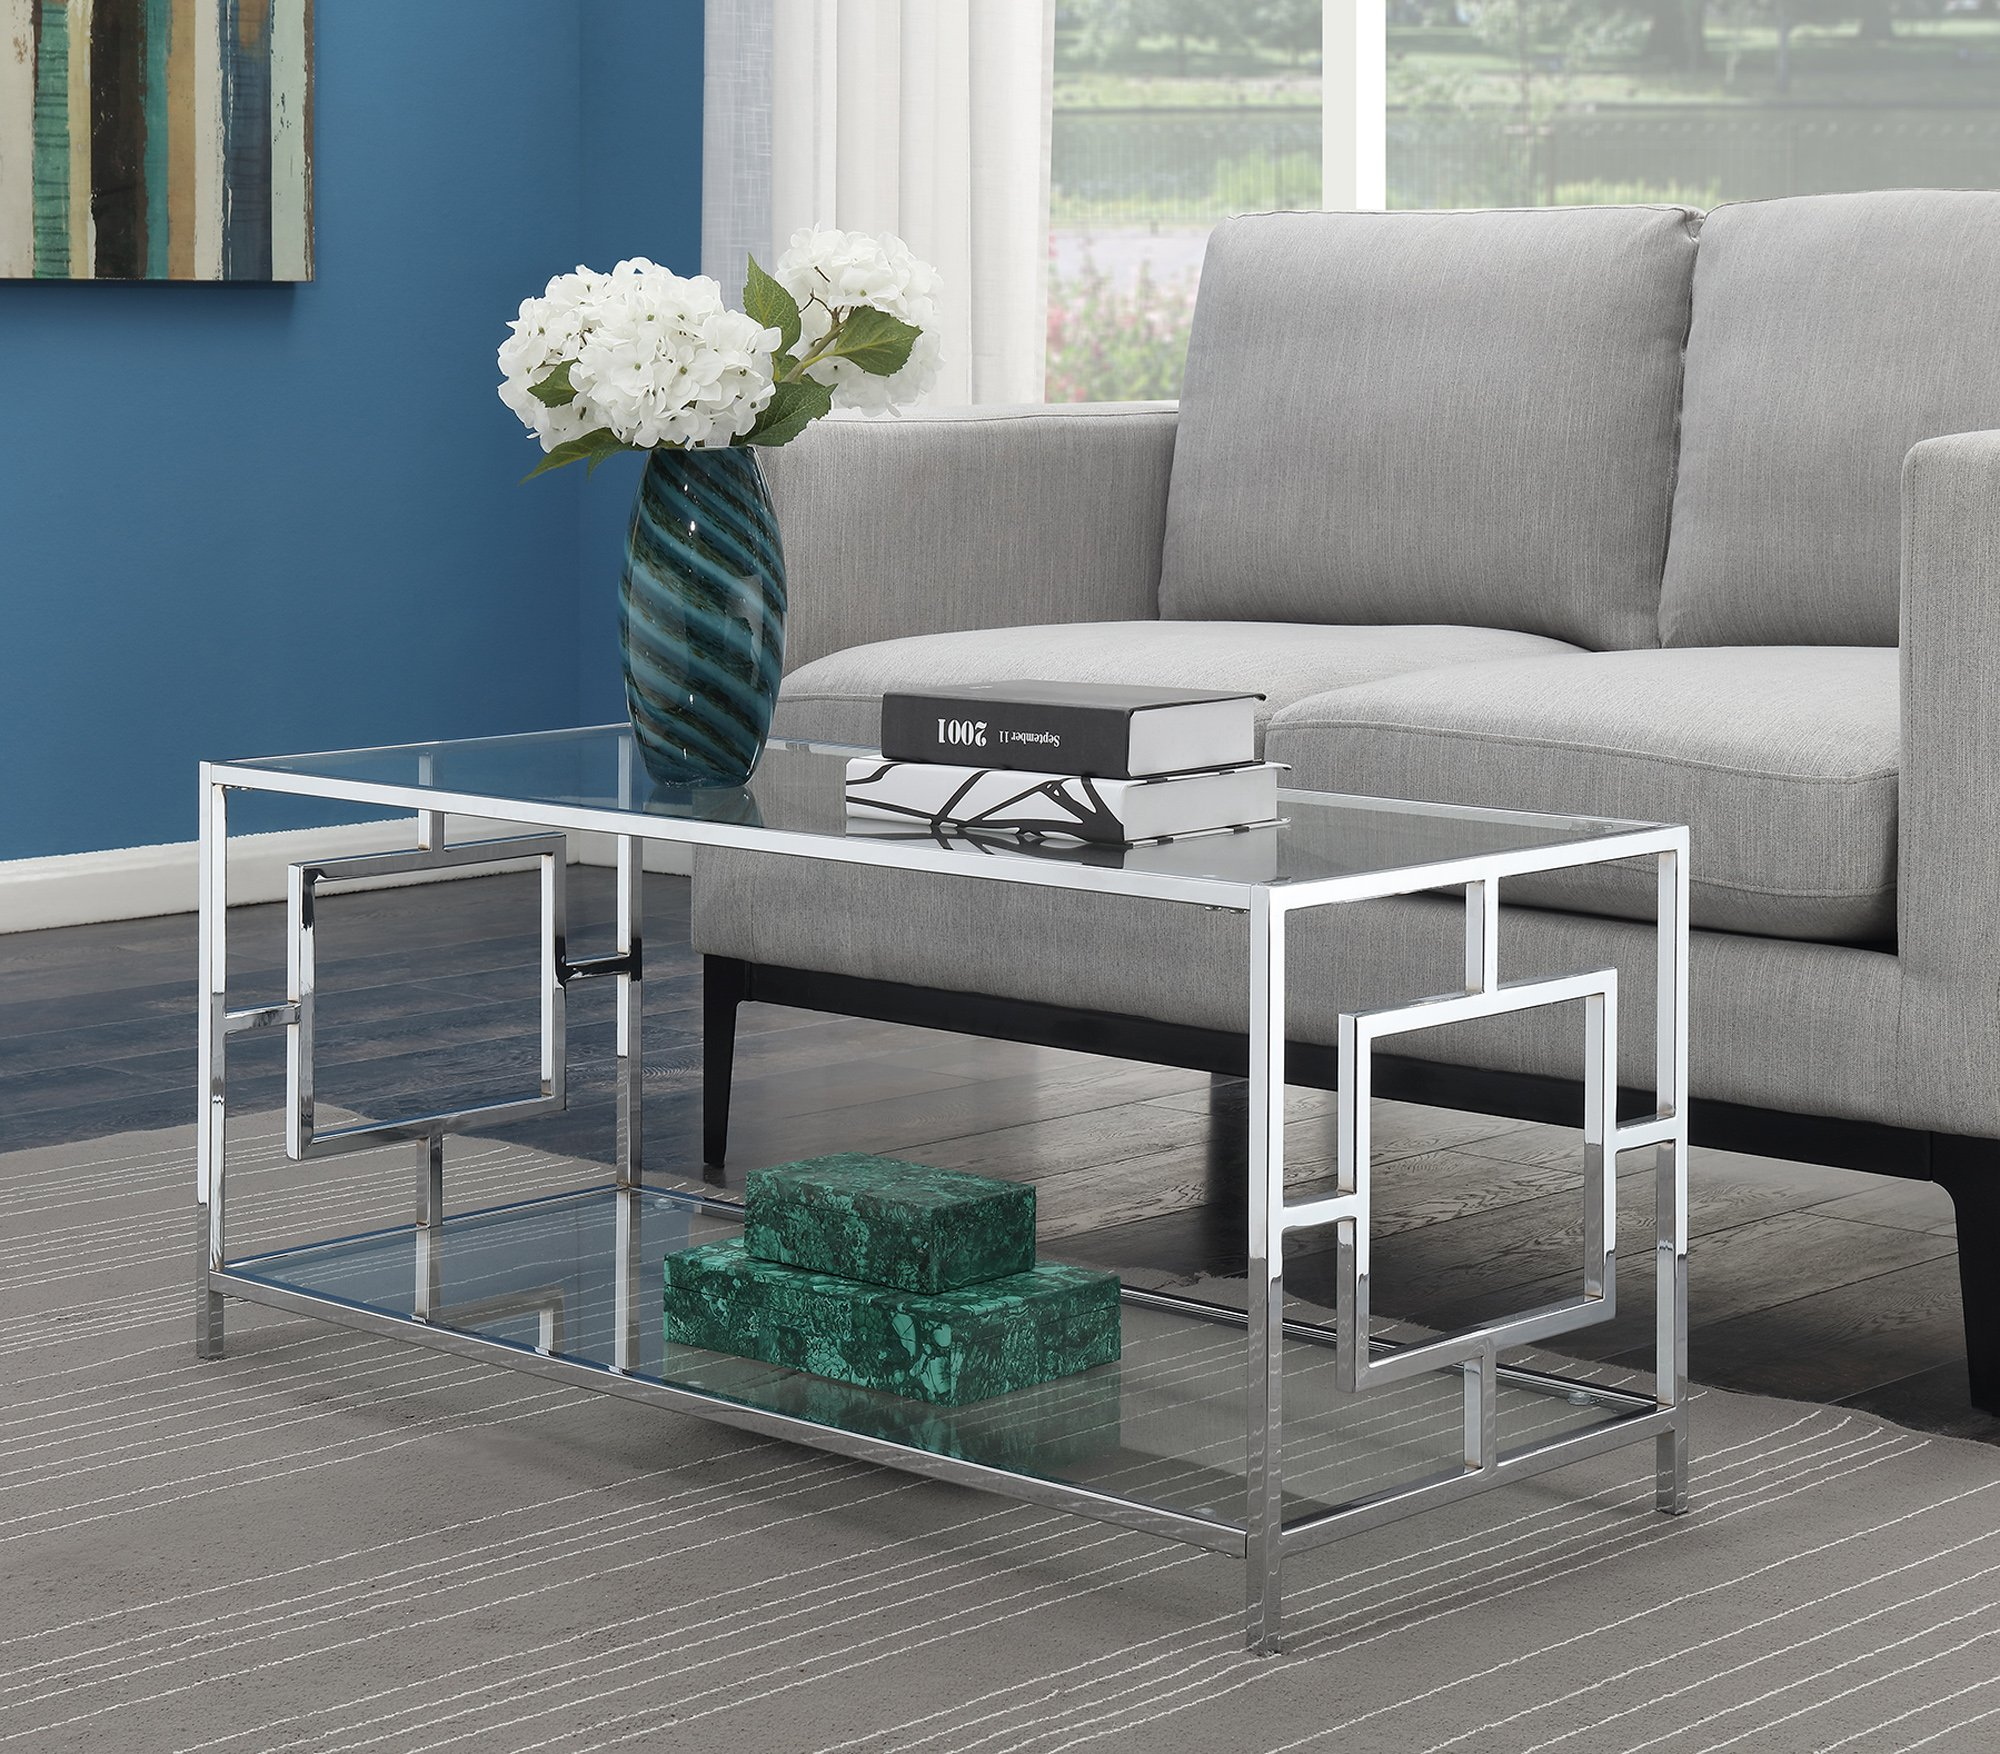 Convenience Concepts 135082 Coffee Table, Clear Glass/Chrome Frame by Convenience Concepts